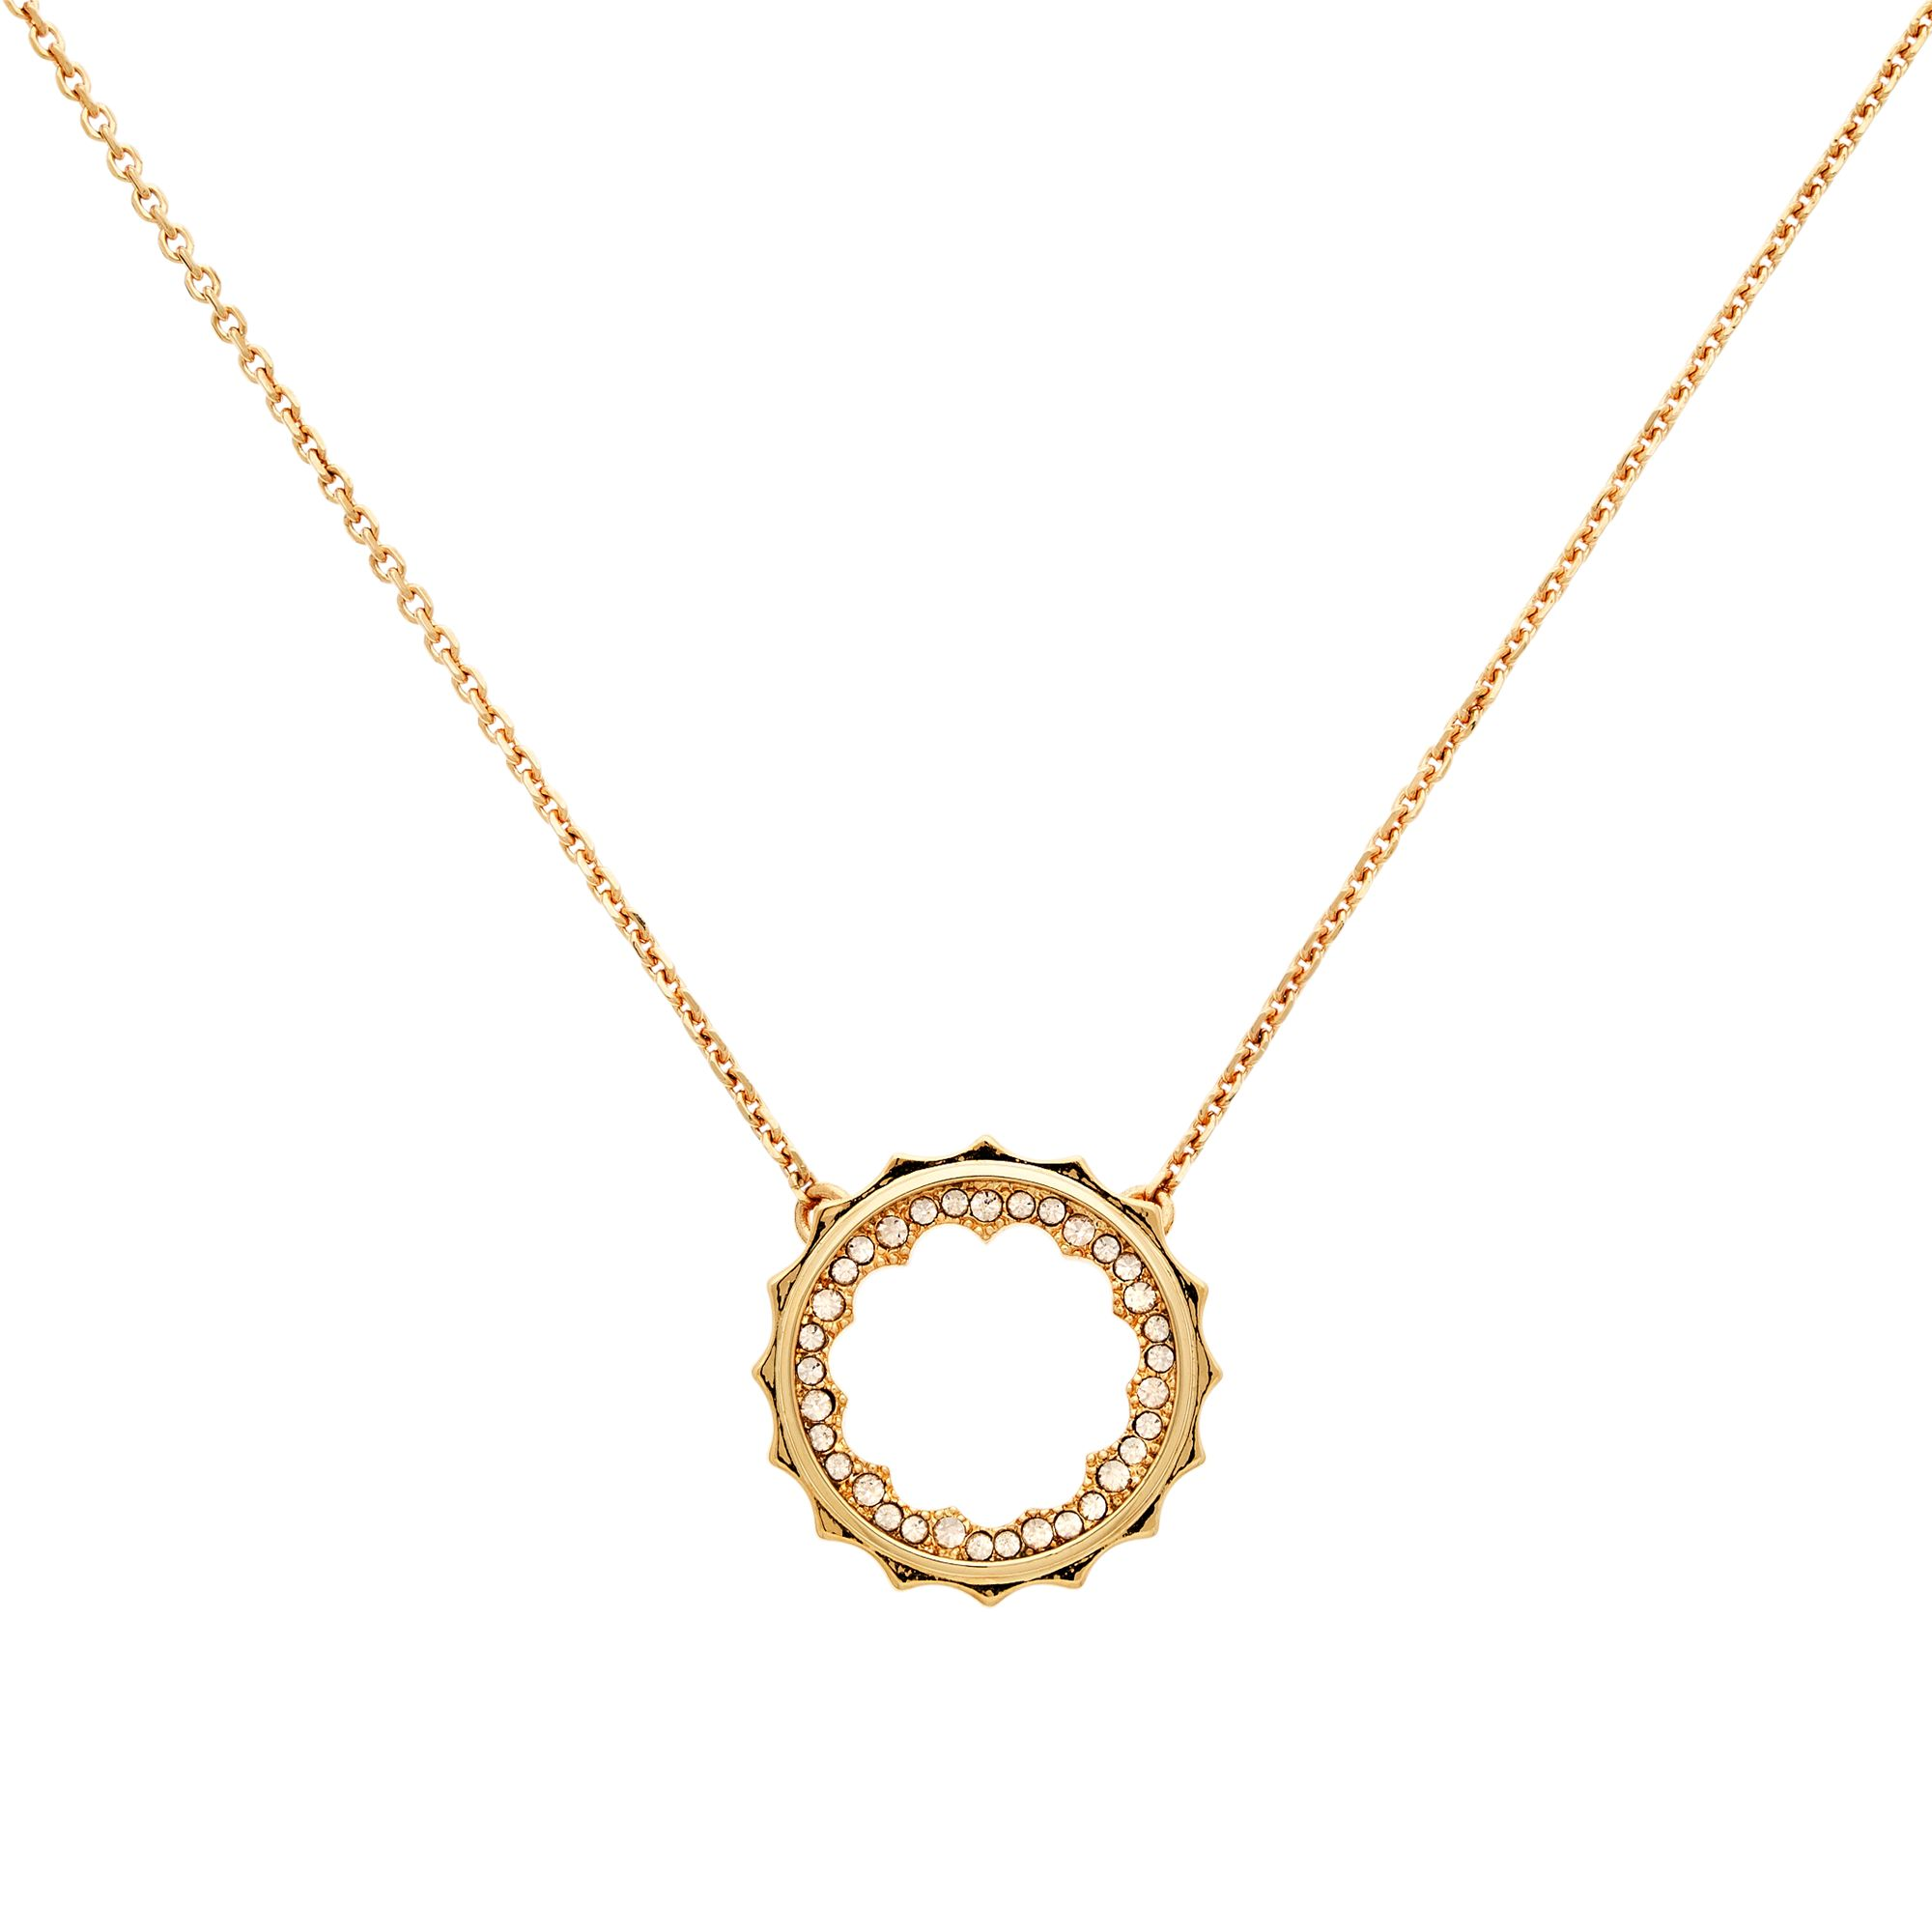 Cachet Cachet Taigi Swarovski Crystal Pendant Necklace, Rose Gold